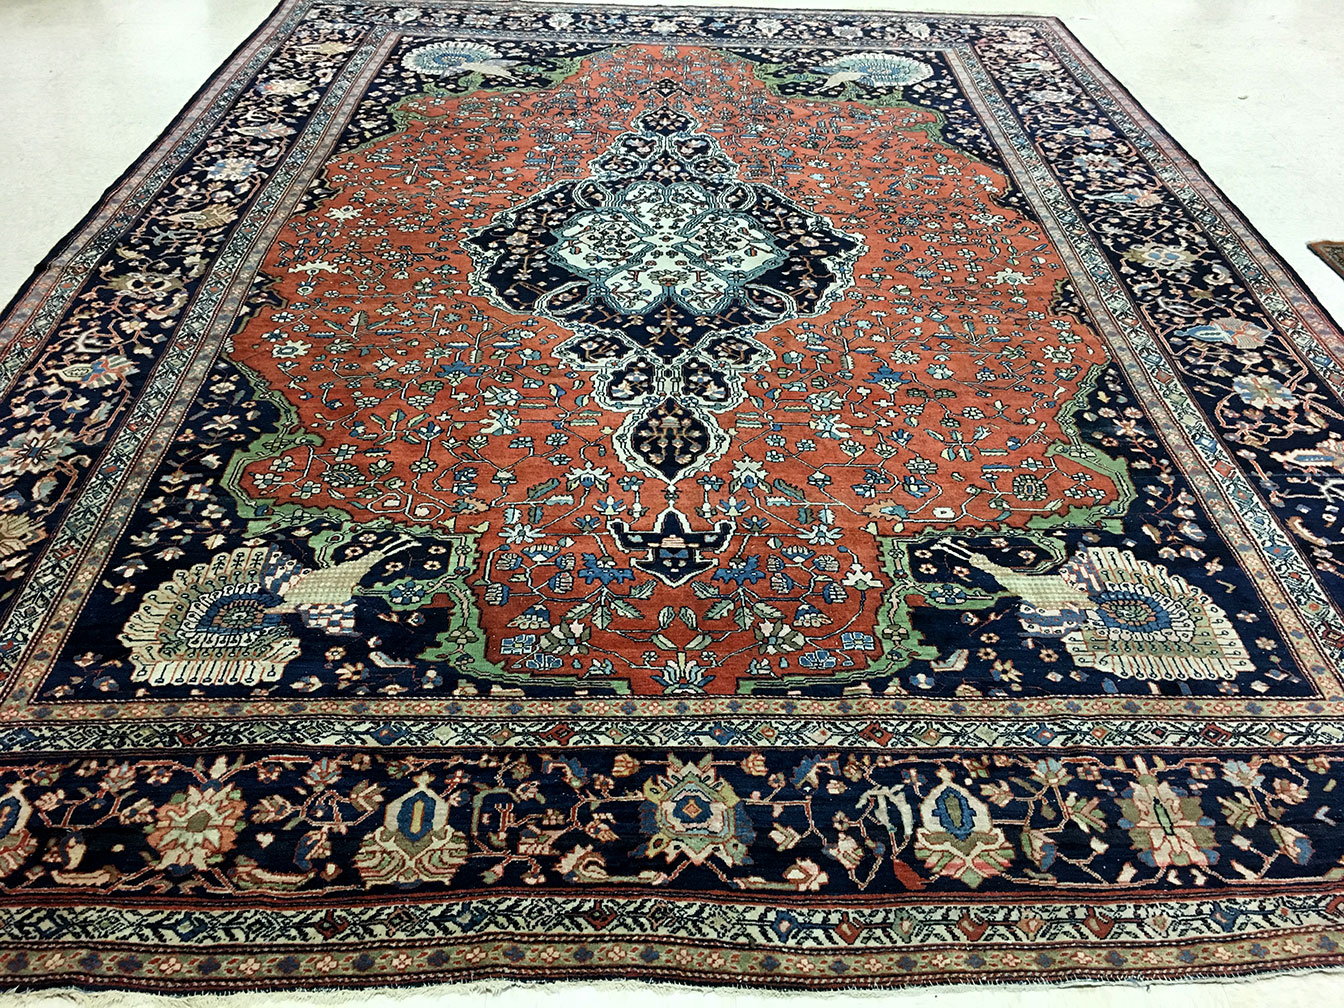 Antique sarouk, fereghan Carpet - # 51636